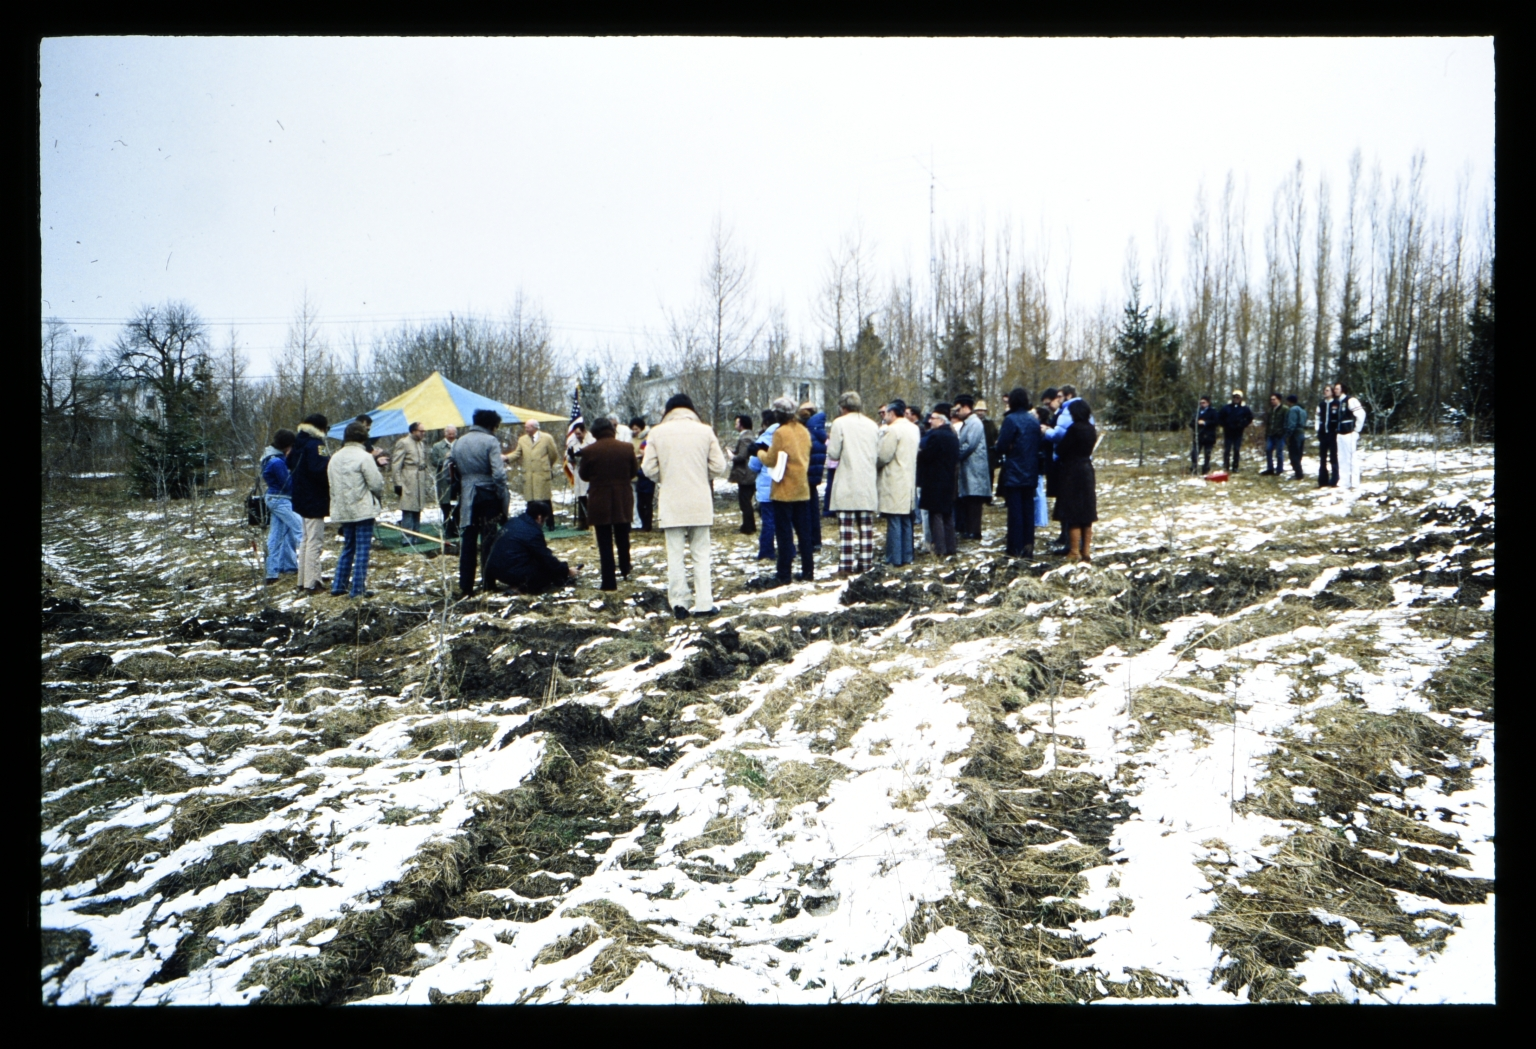 Gathering at the construction site